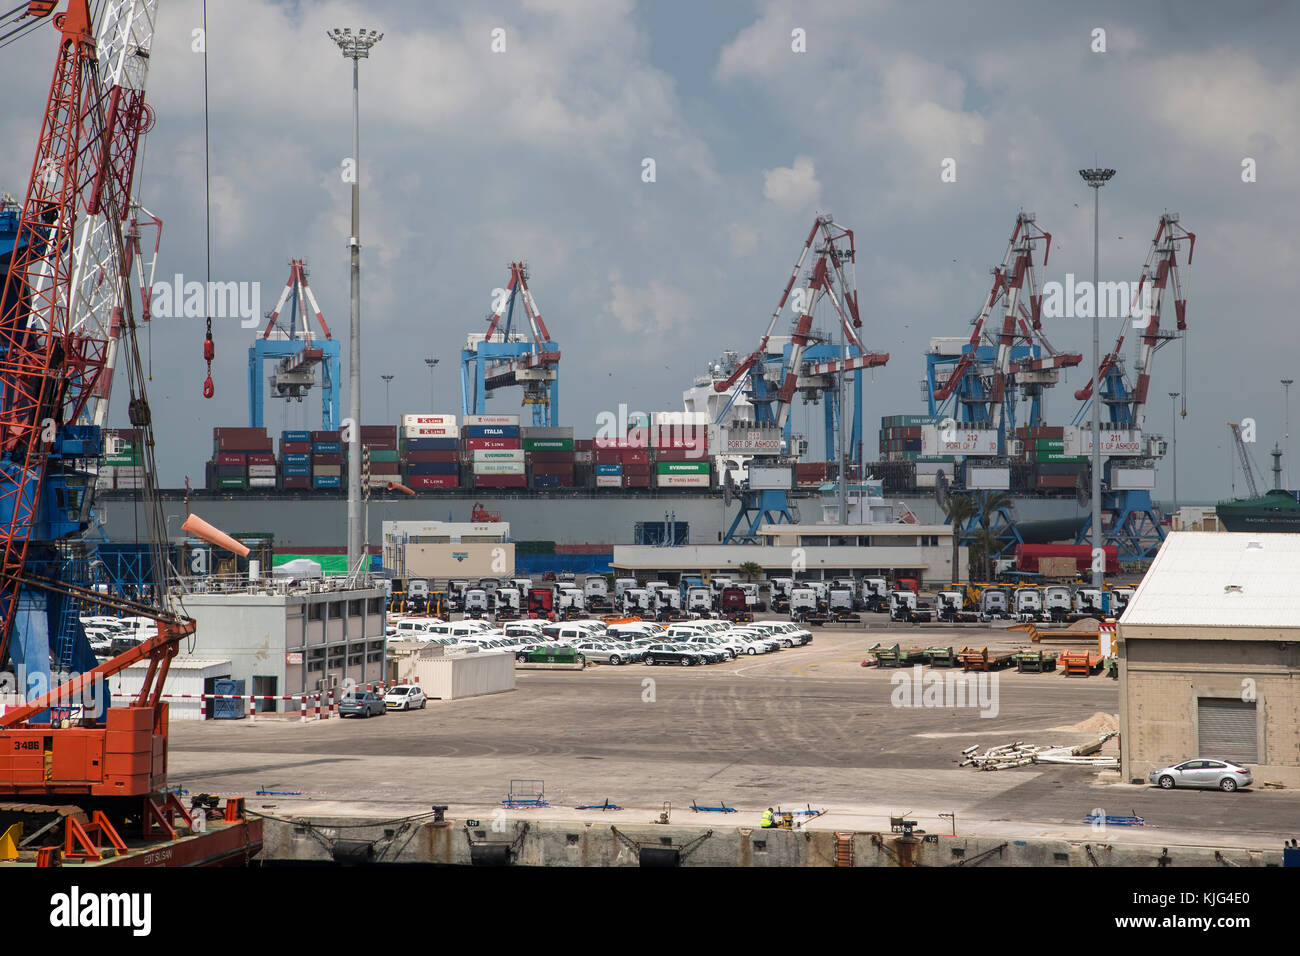 The Port of Ashdod in Israel with several large container handling cranes, vehicles on the dockside and shipping - Stock Image